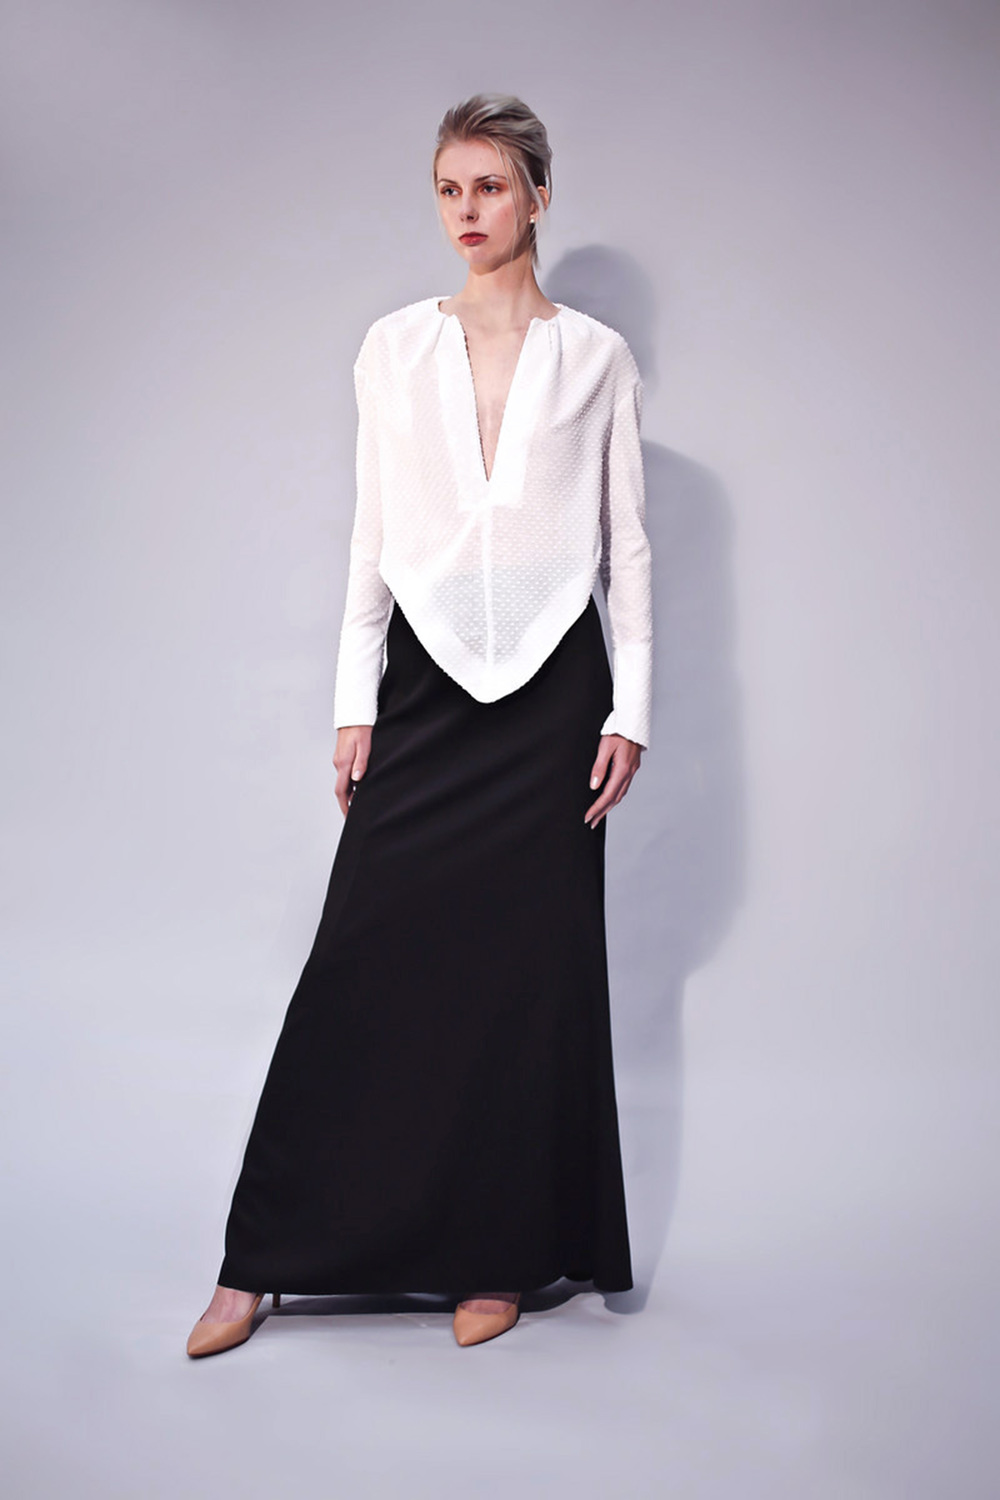 HABENARIA RADIATA TOP AND LONG SKIRT